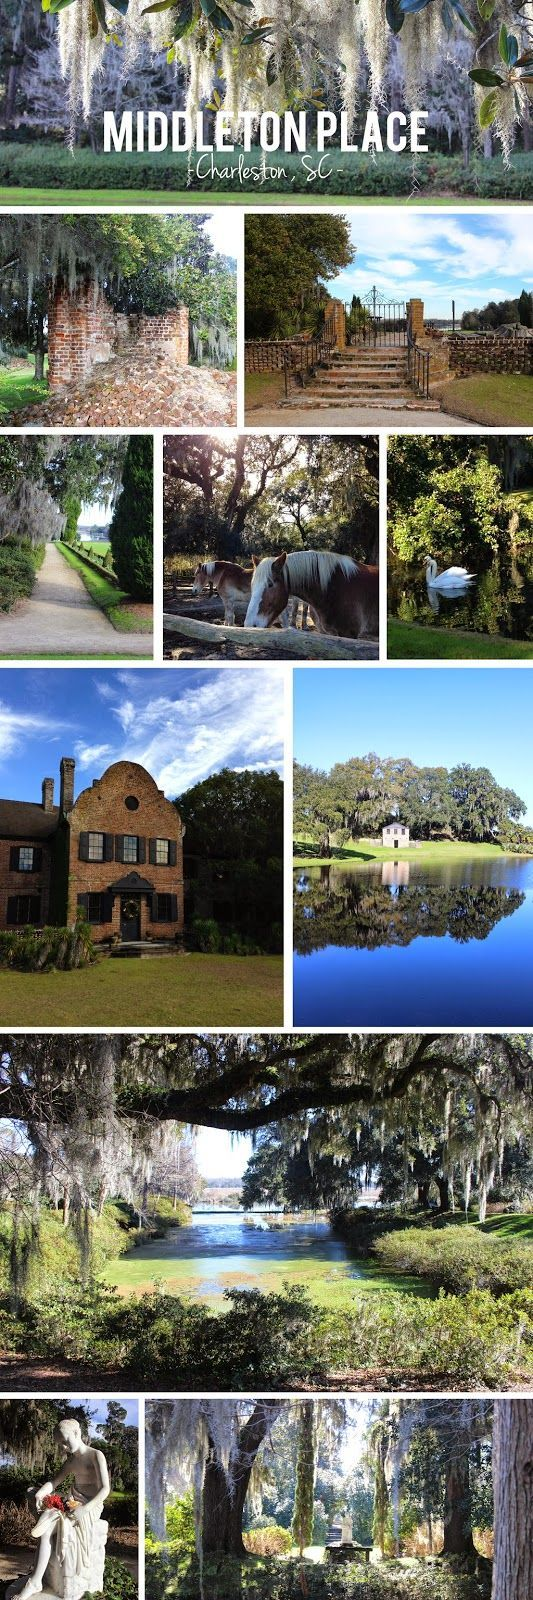 Top 10 Historical Myrtle Beach Attractions to Visit